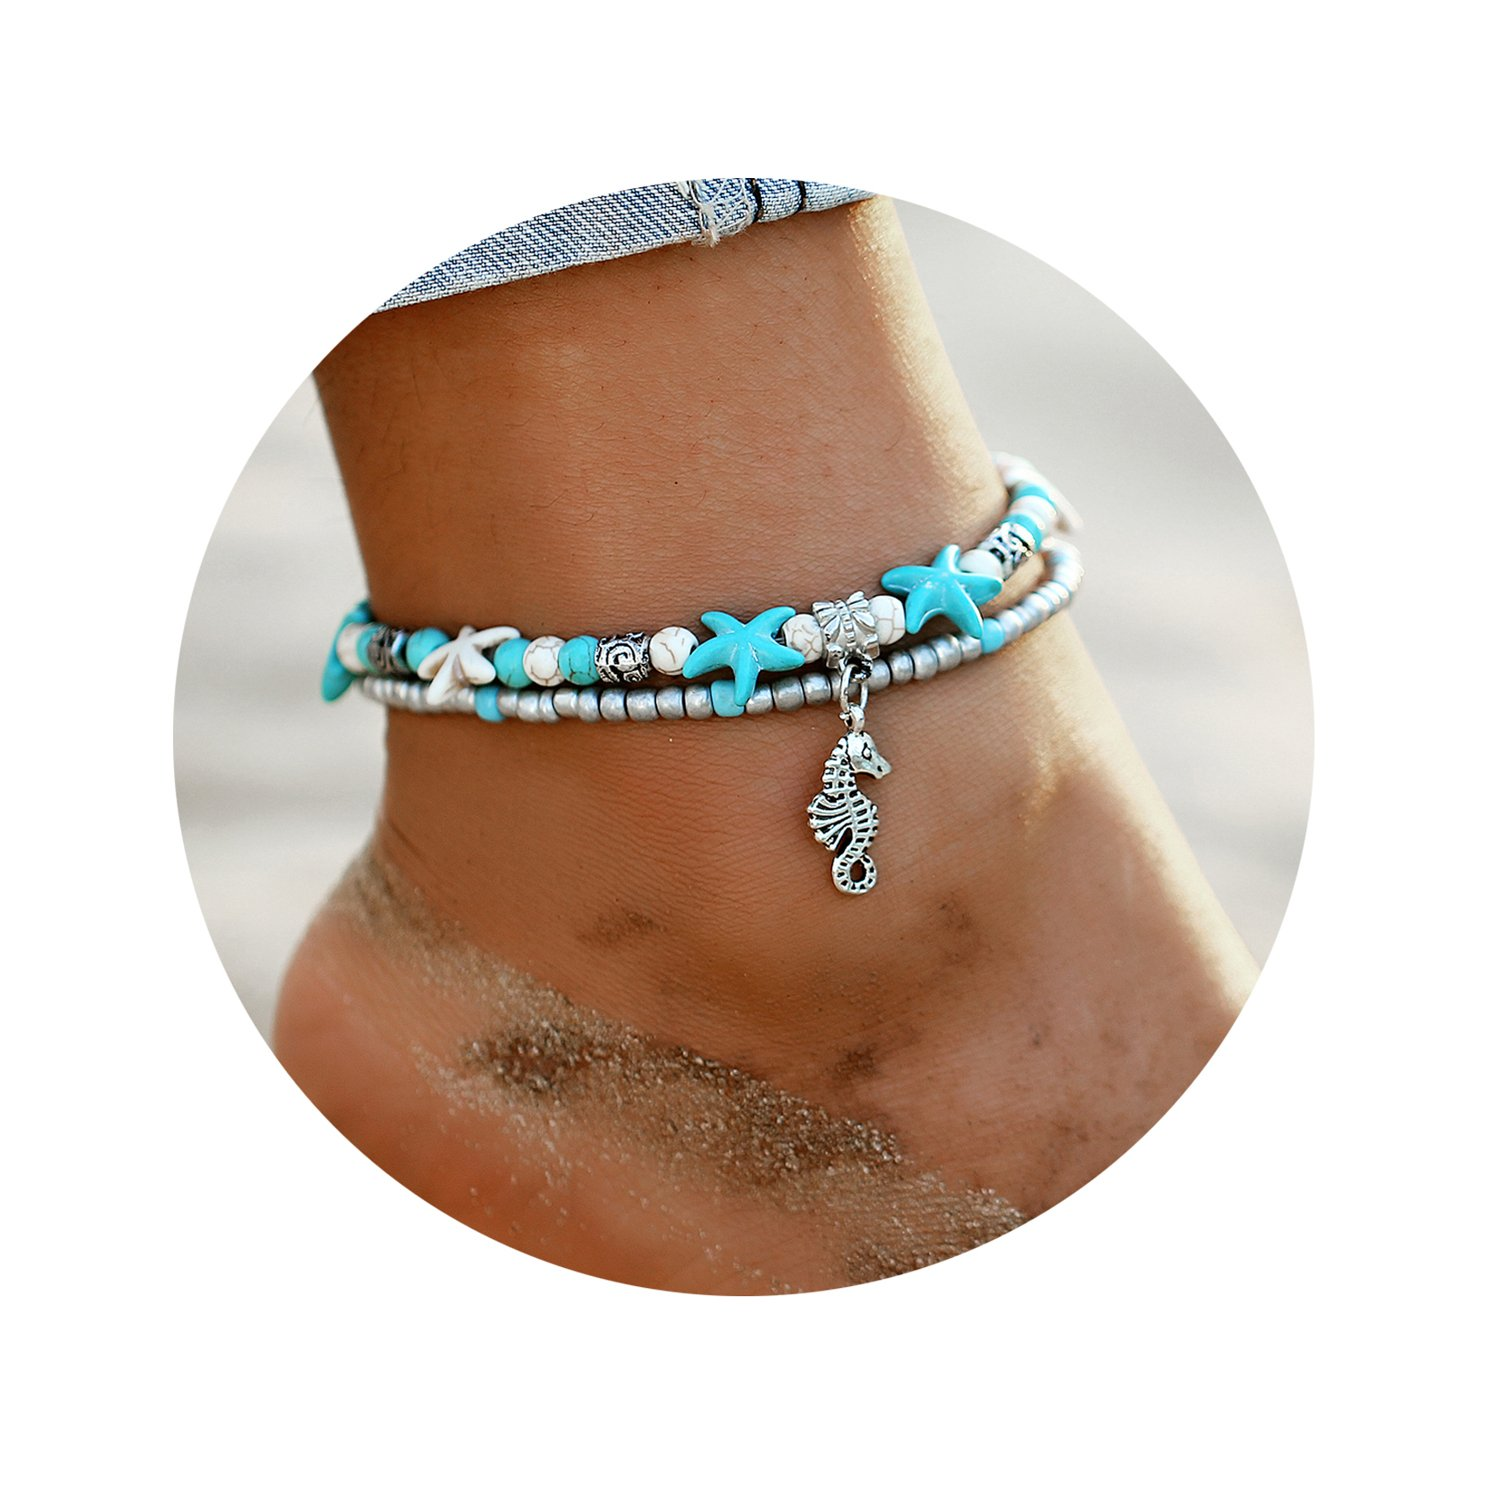 17mile Blue Starfish Turtle Anklet Multi-Layer Charm Beads Sea Bench Handmade Boho Anklet Foot Jewelry Gifts for Women TVYB0023US